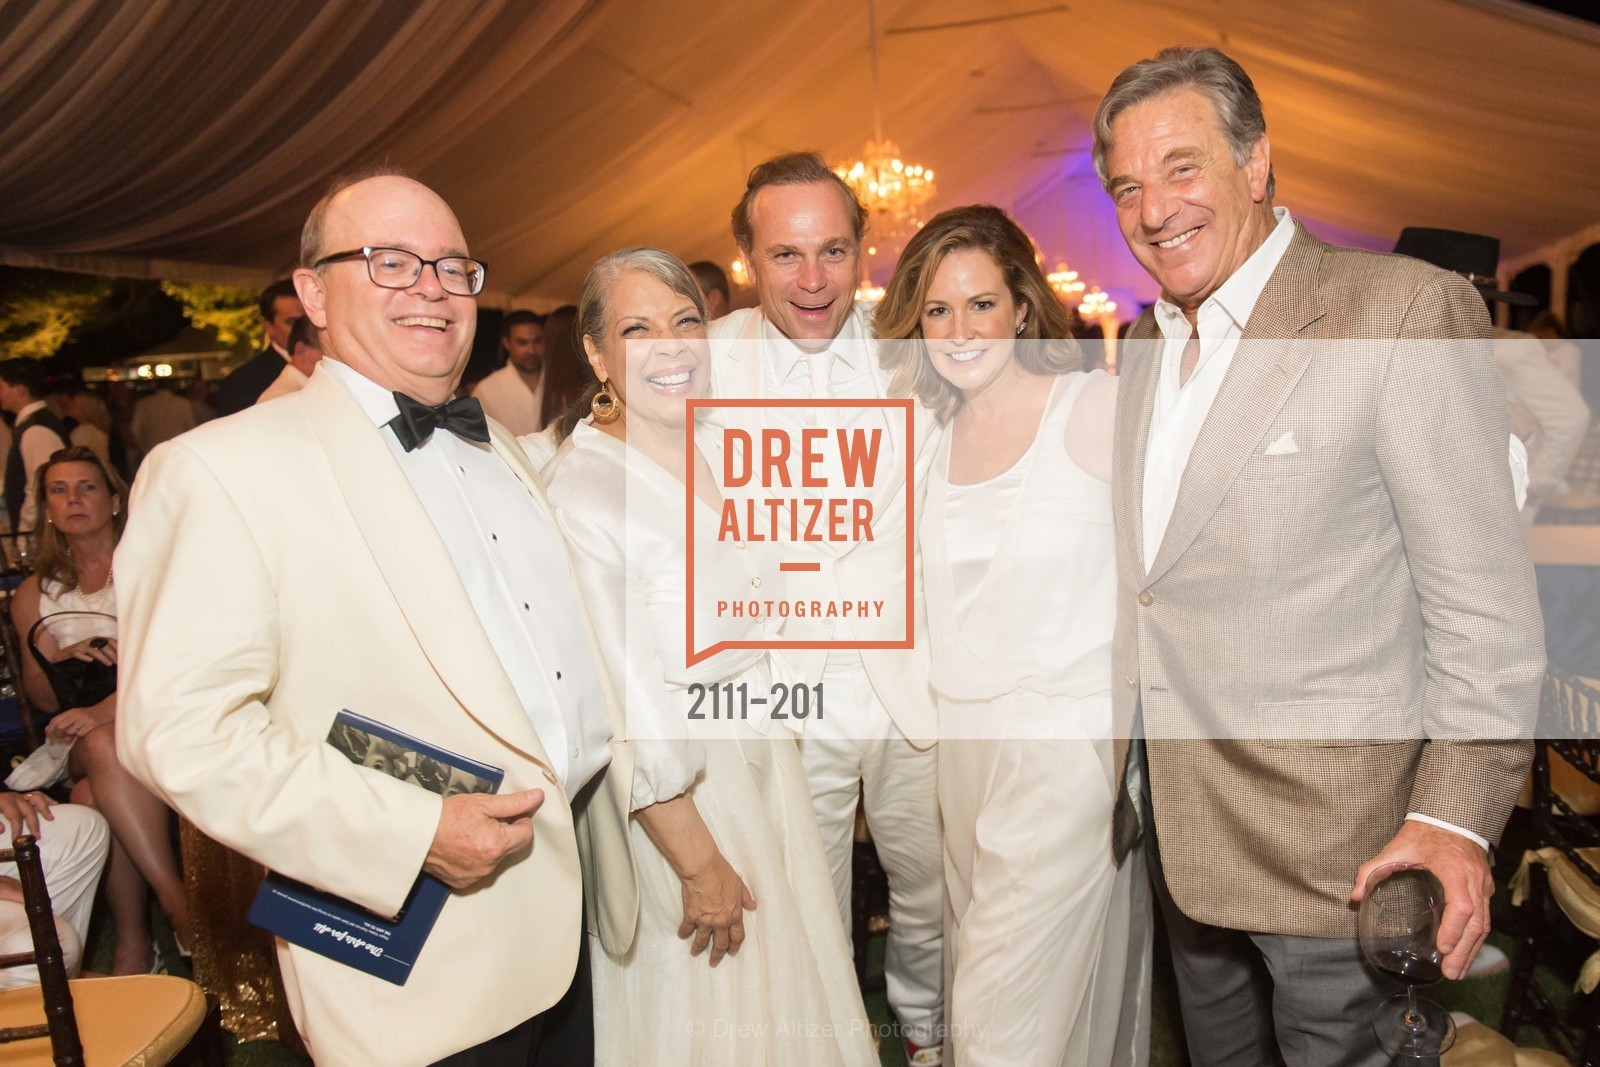 Fritz Hatton, Patti Austin, Jean-Charles Boisset, Maggie Oetgen, Paul Pelosi, Festival del Sole Annual Gala at Meadowood Napa Valley, Meadowood Napa Valley. 900 Meadowood Ln, July 19th, 2015,Drew Altizer, Drew Altizer Photography, full-service event agency, private events, San Francisco photographer, photographer California